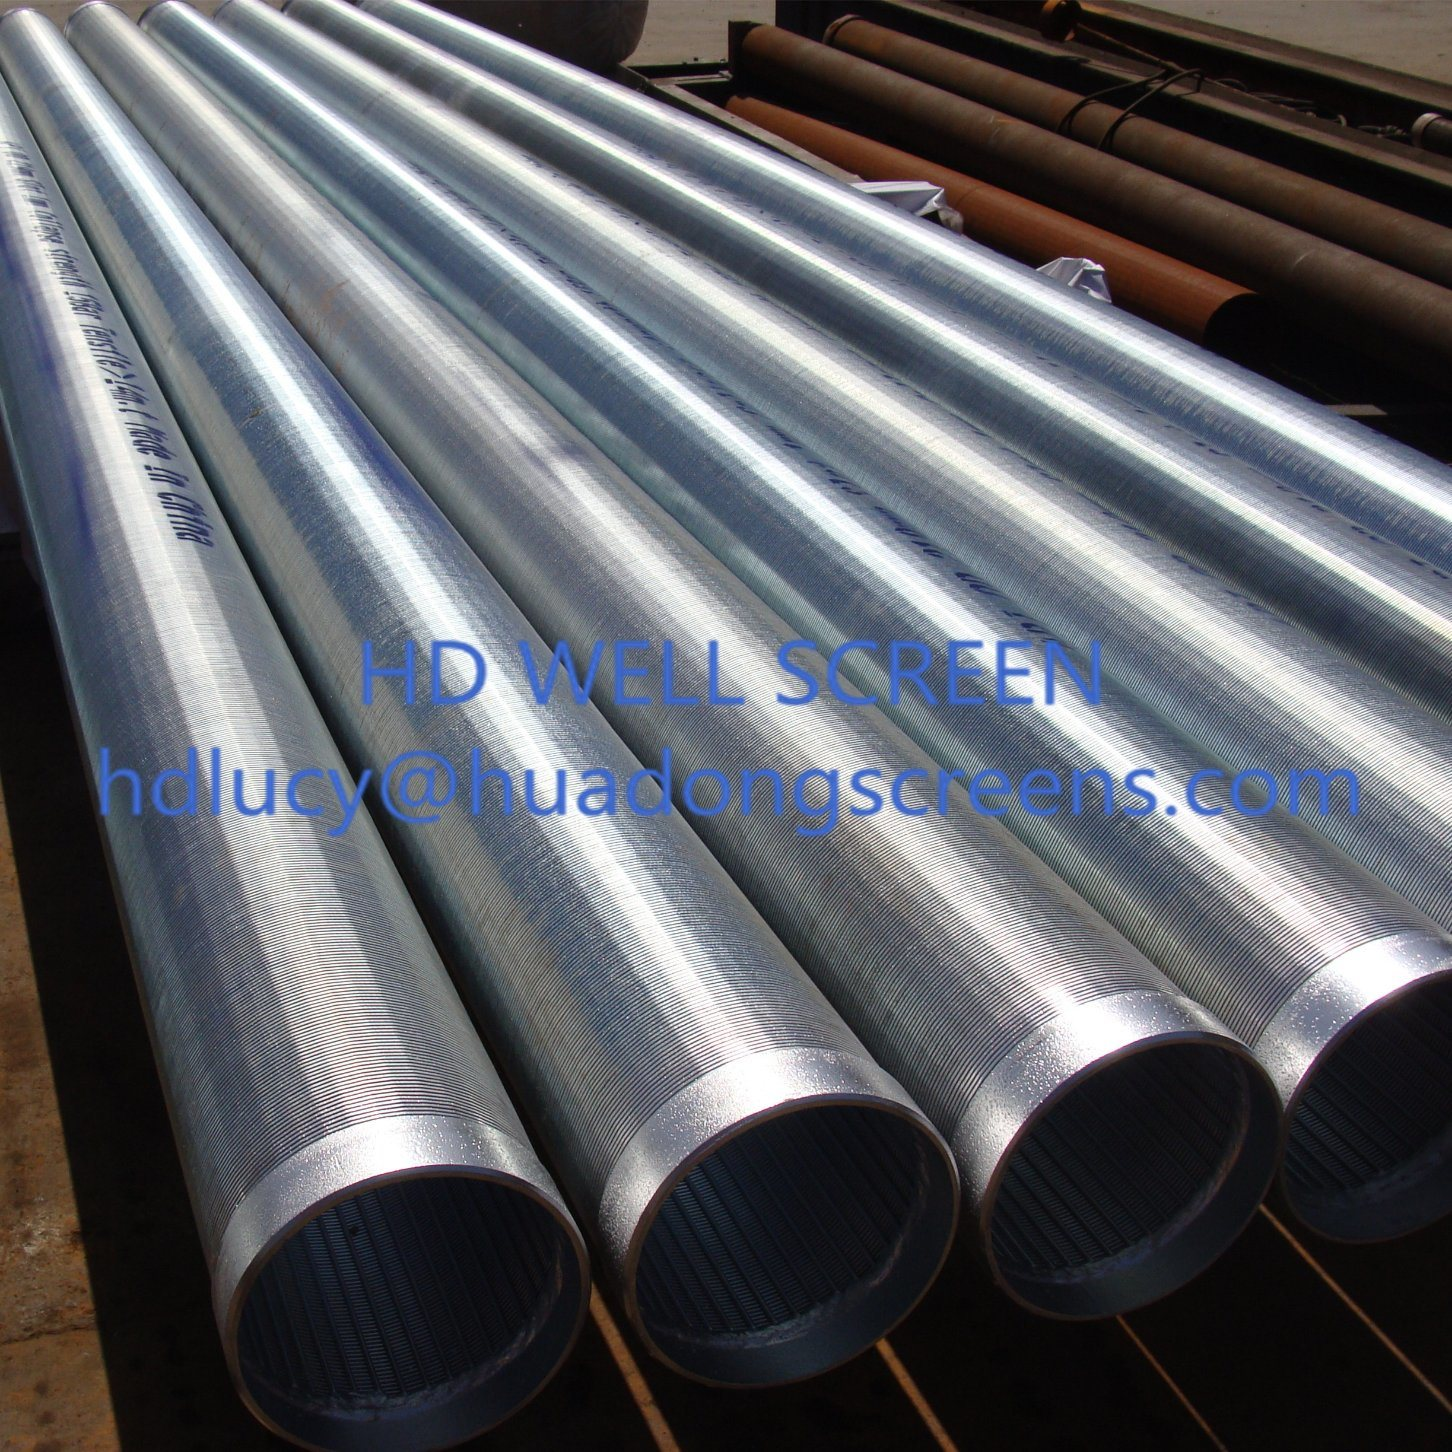 1.0mm Slot Stainless Steel 304/316 Johnson Wire Wrapped Well Screen Pipe with Thread Coupling